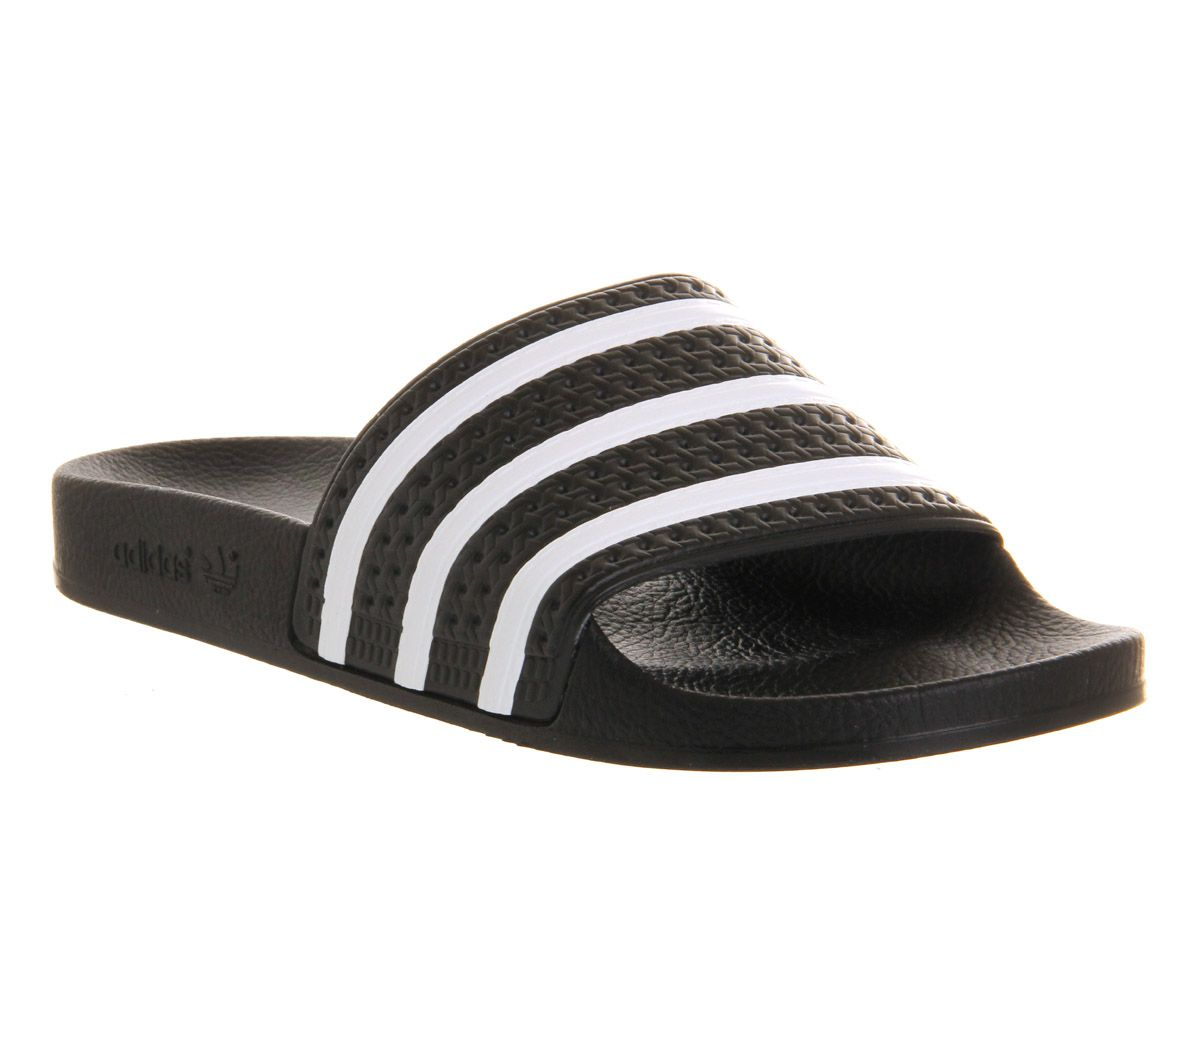 aac9c13ac adidas Adilette Sliders Black White - Office Girl